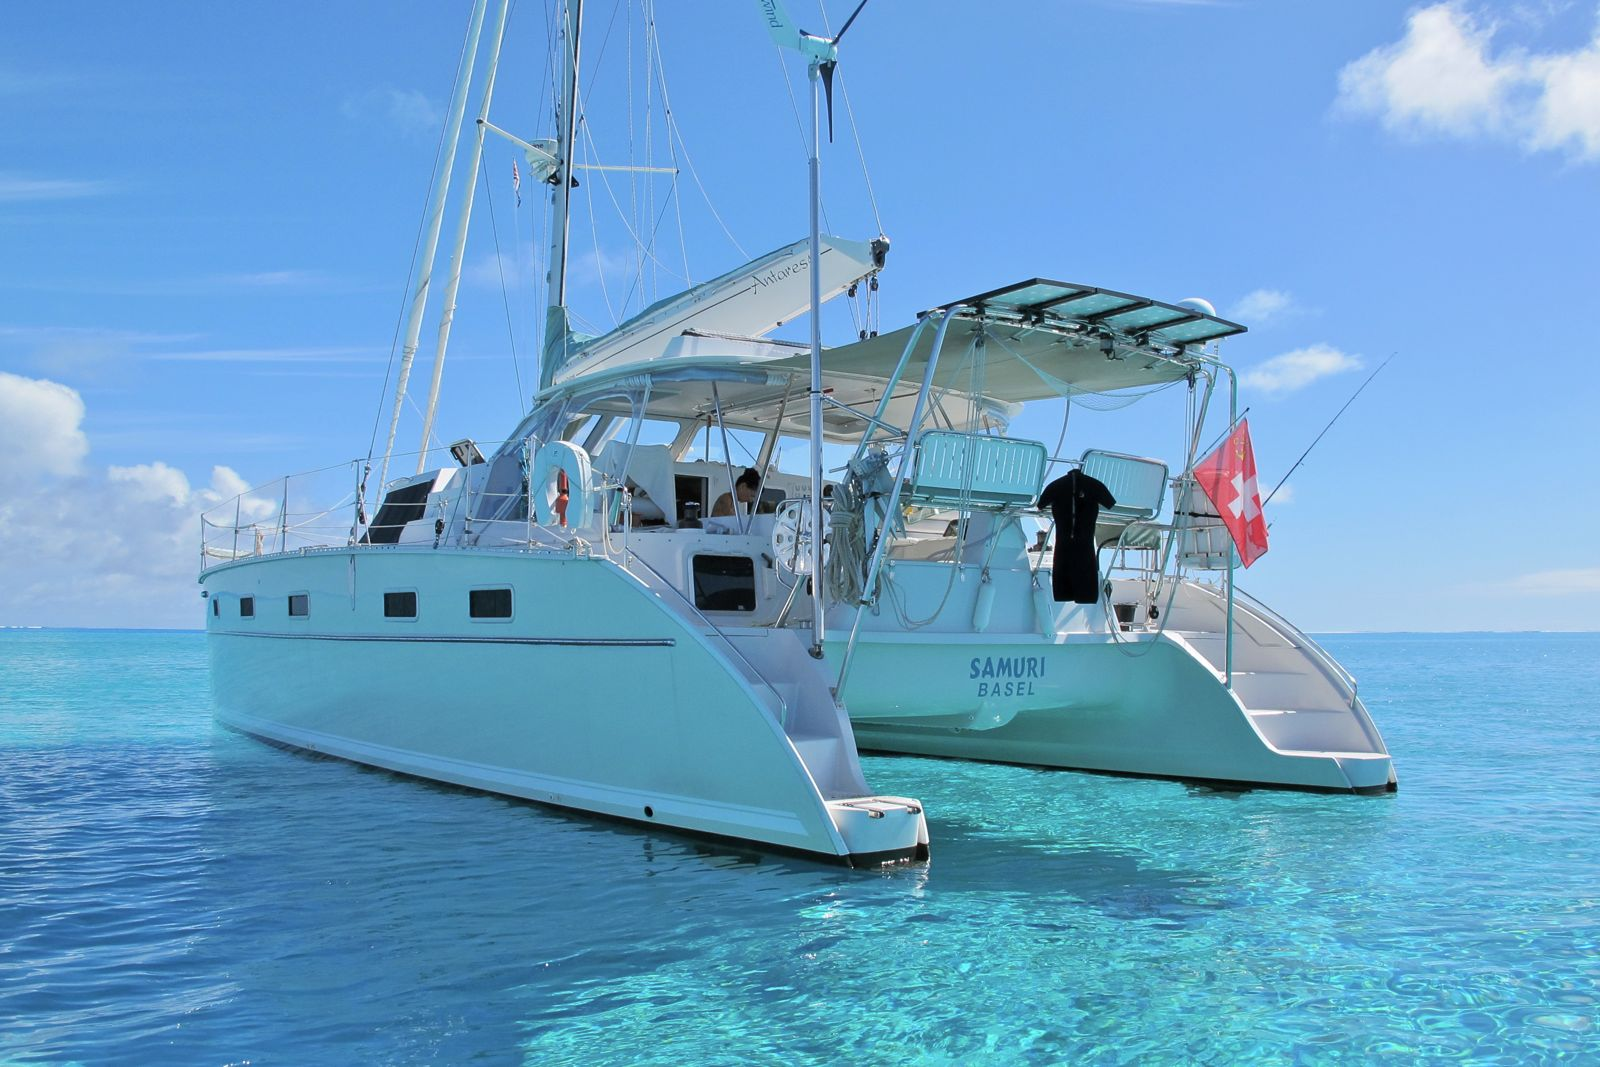 For Sale: PDQ Antares 44i for sale - Cruisers & Sailing Forums